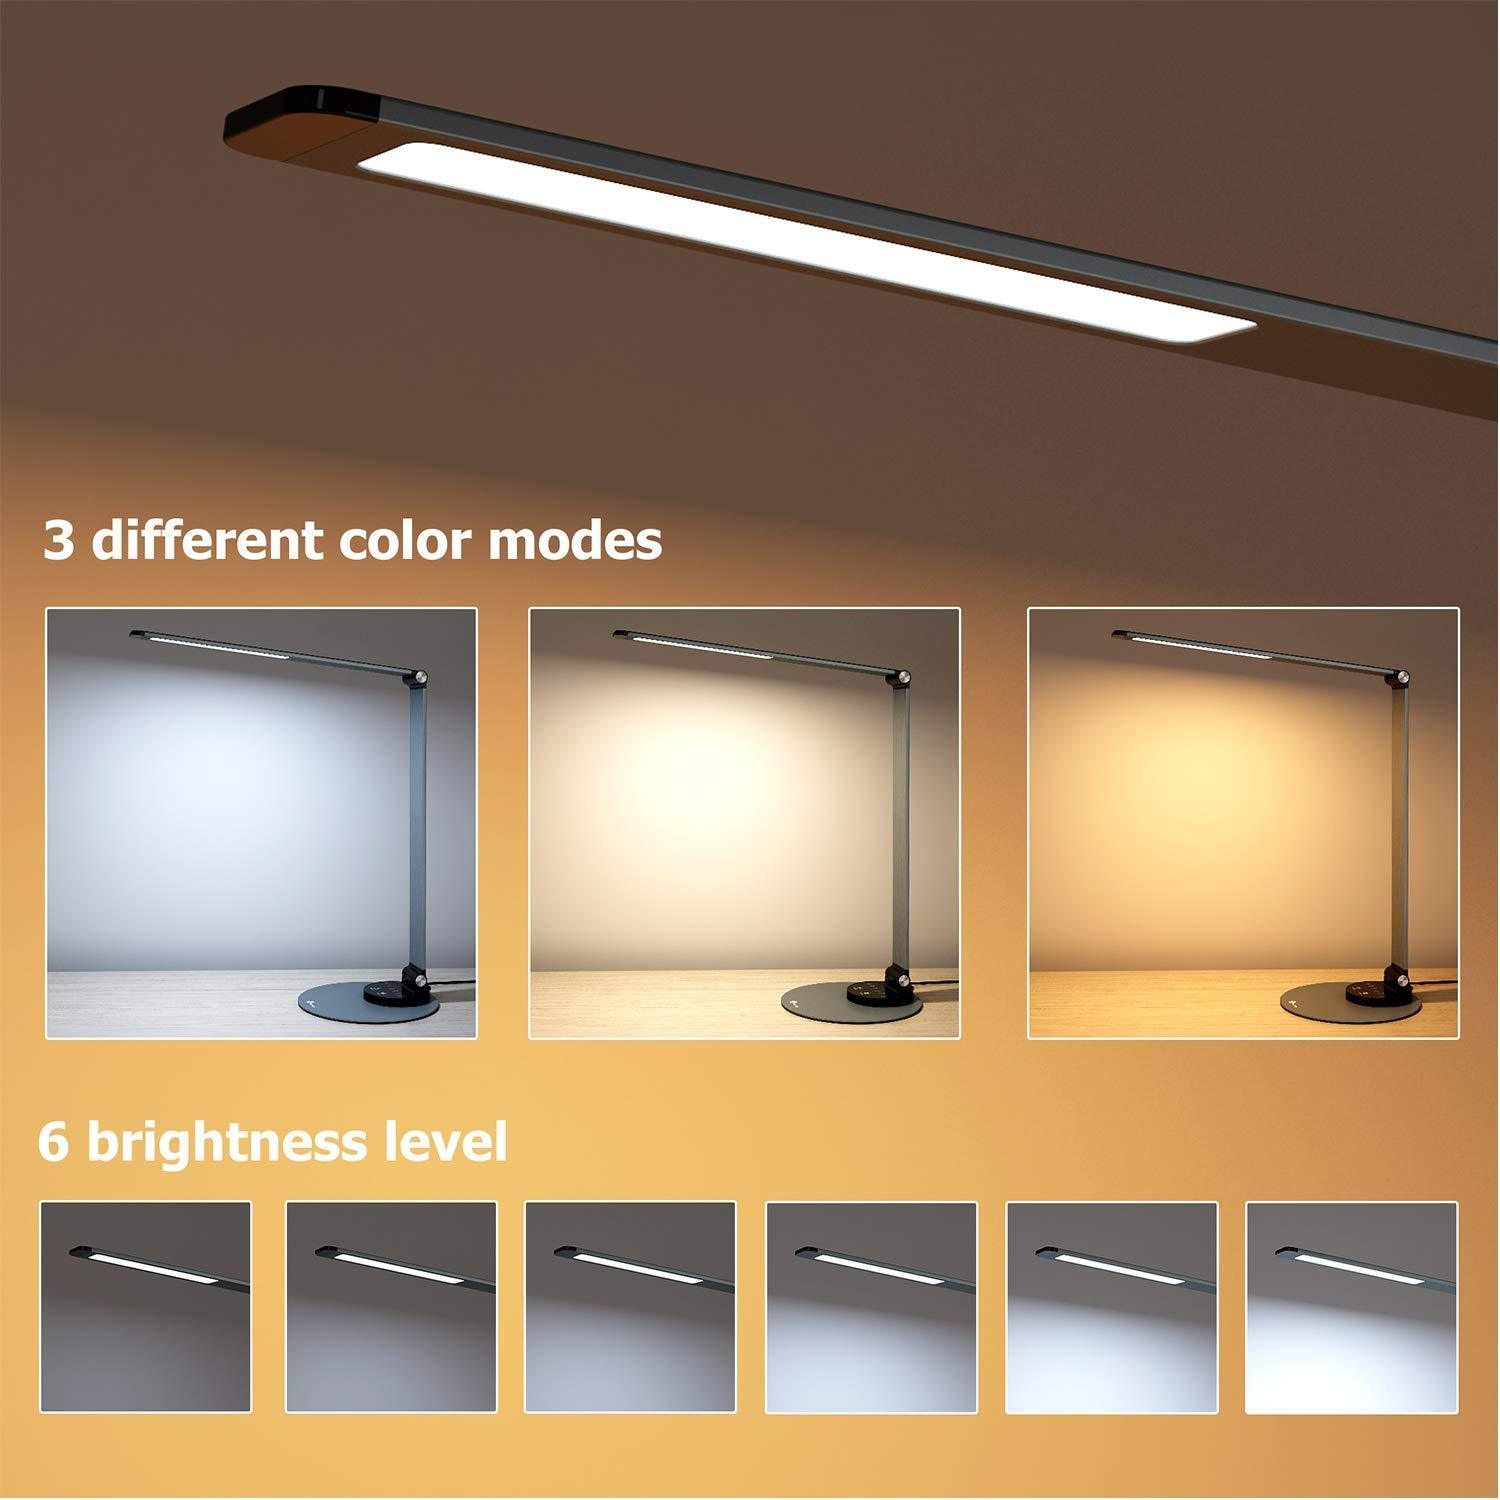 TaoTronics Aluminum Alloy Dimmable LED Desk Lamp DL22 Gallery 4